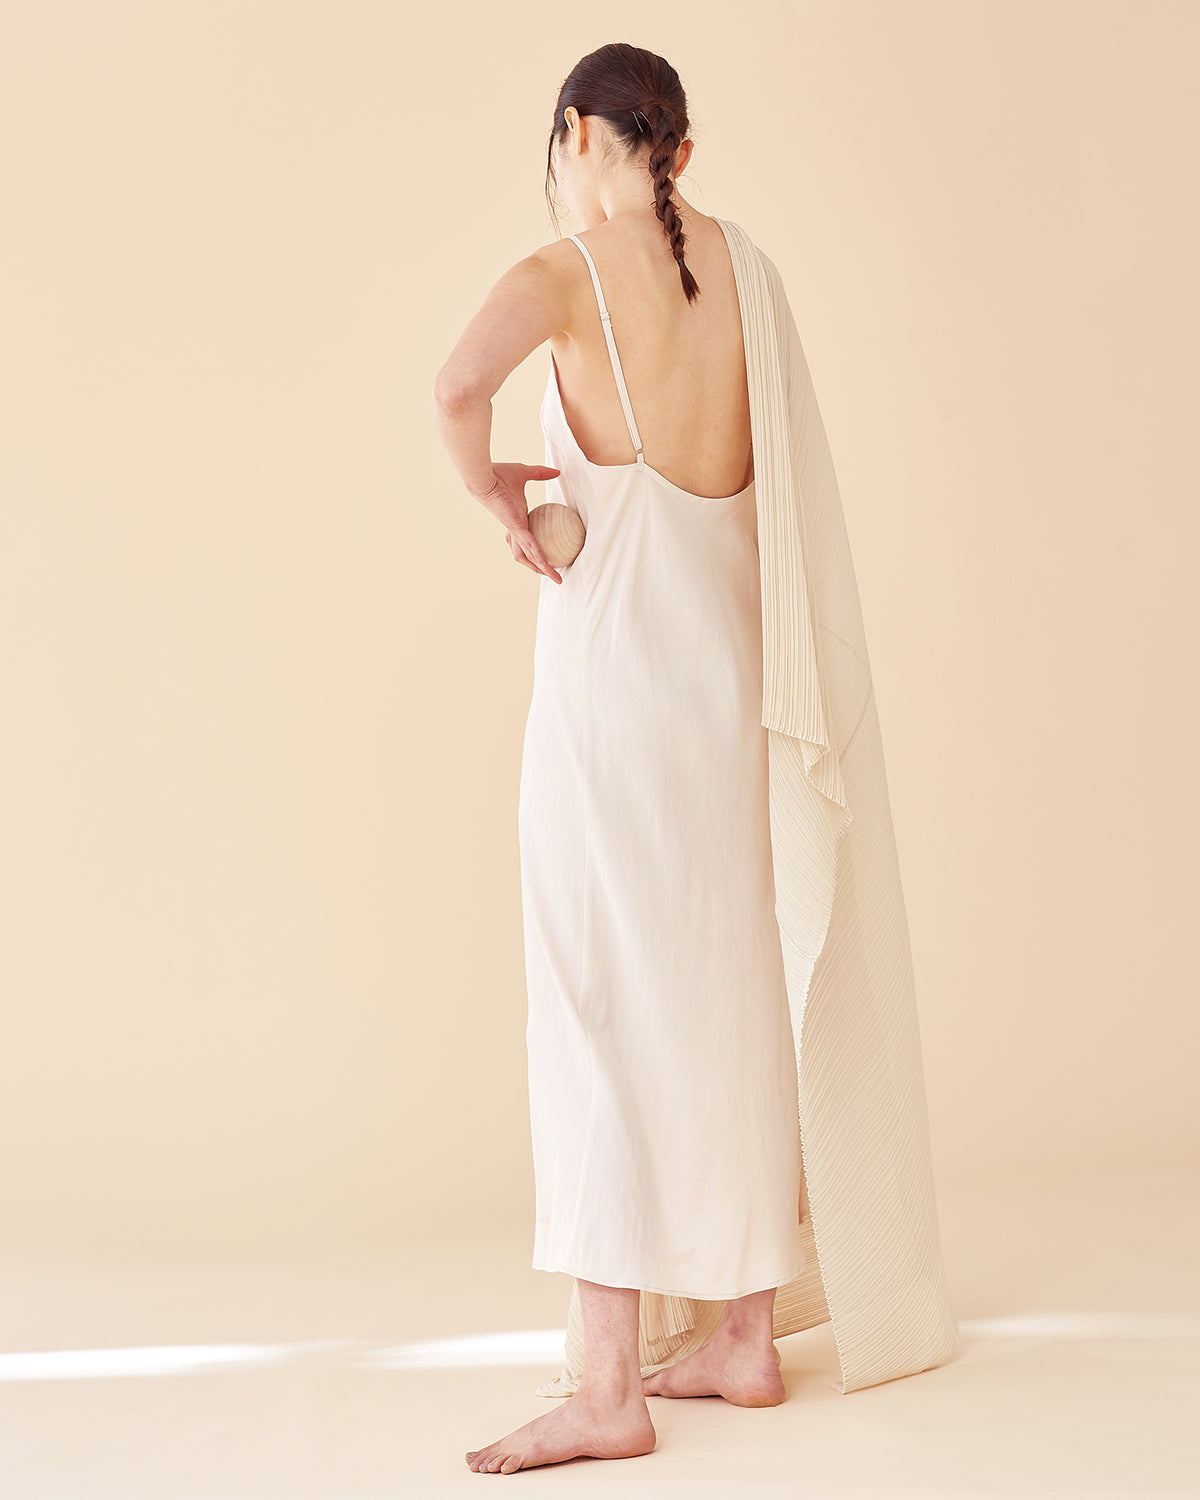 Caroline Long Slip Dress / Nude Pink